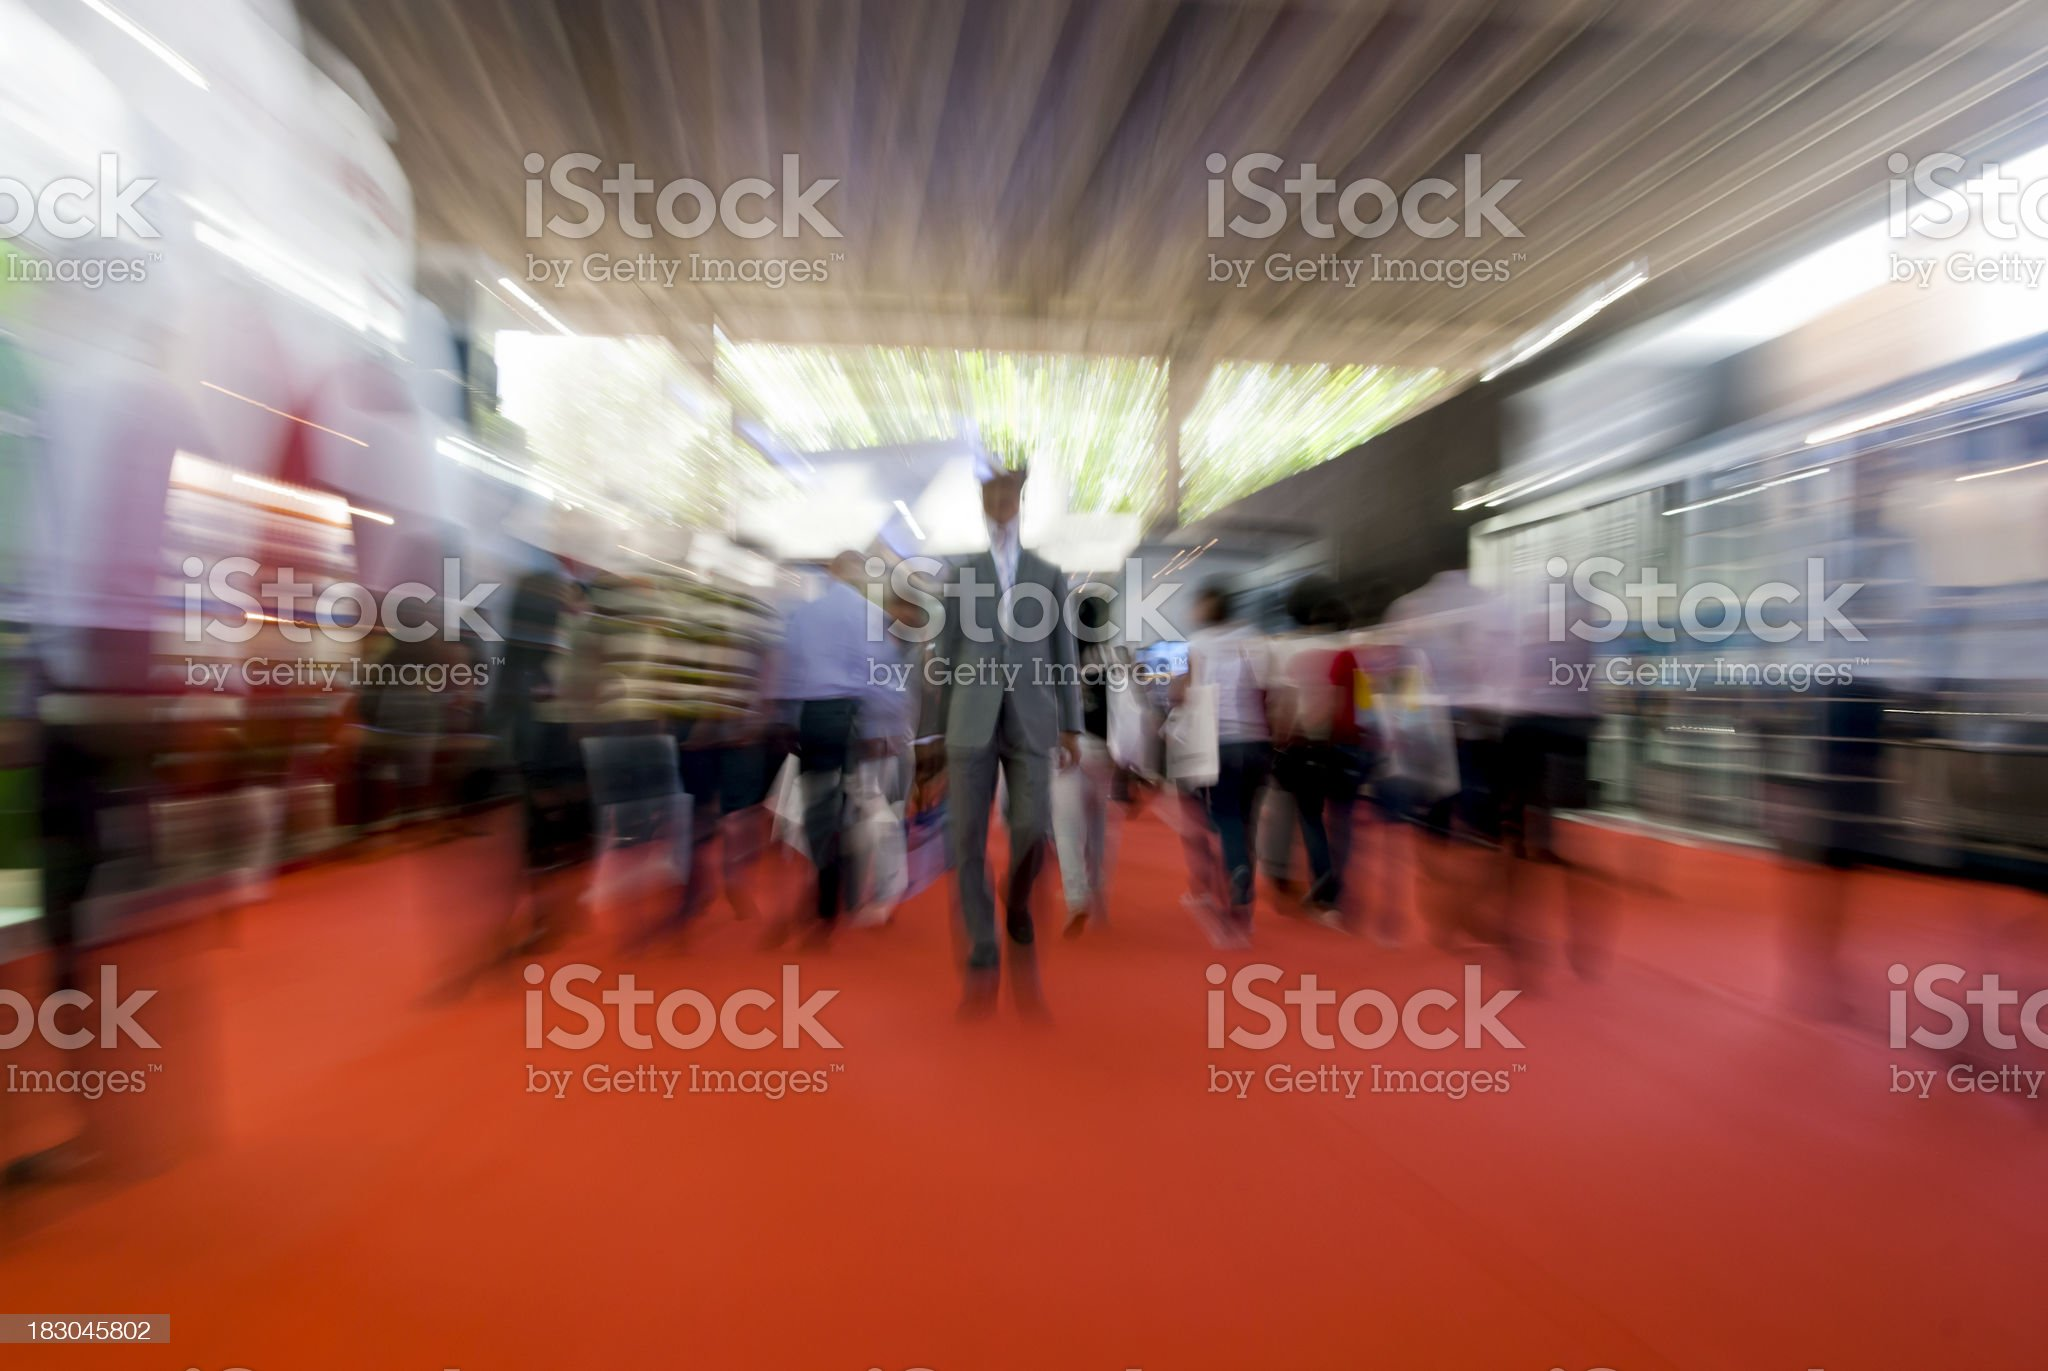 People walking on a red carpet royalty-free stock photo